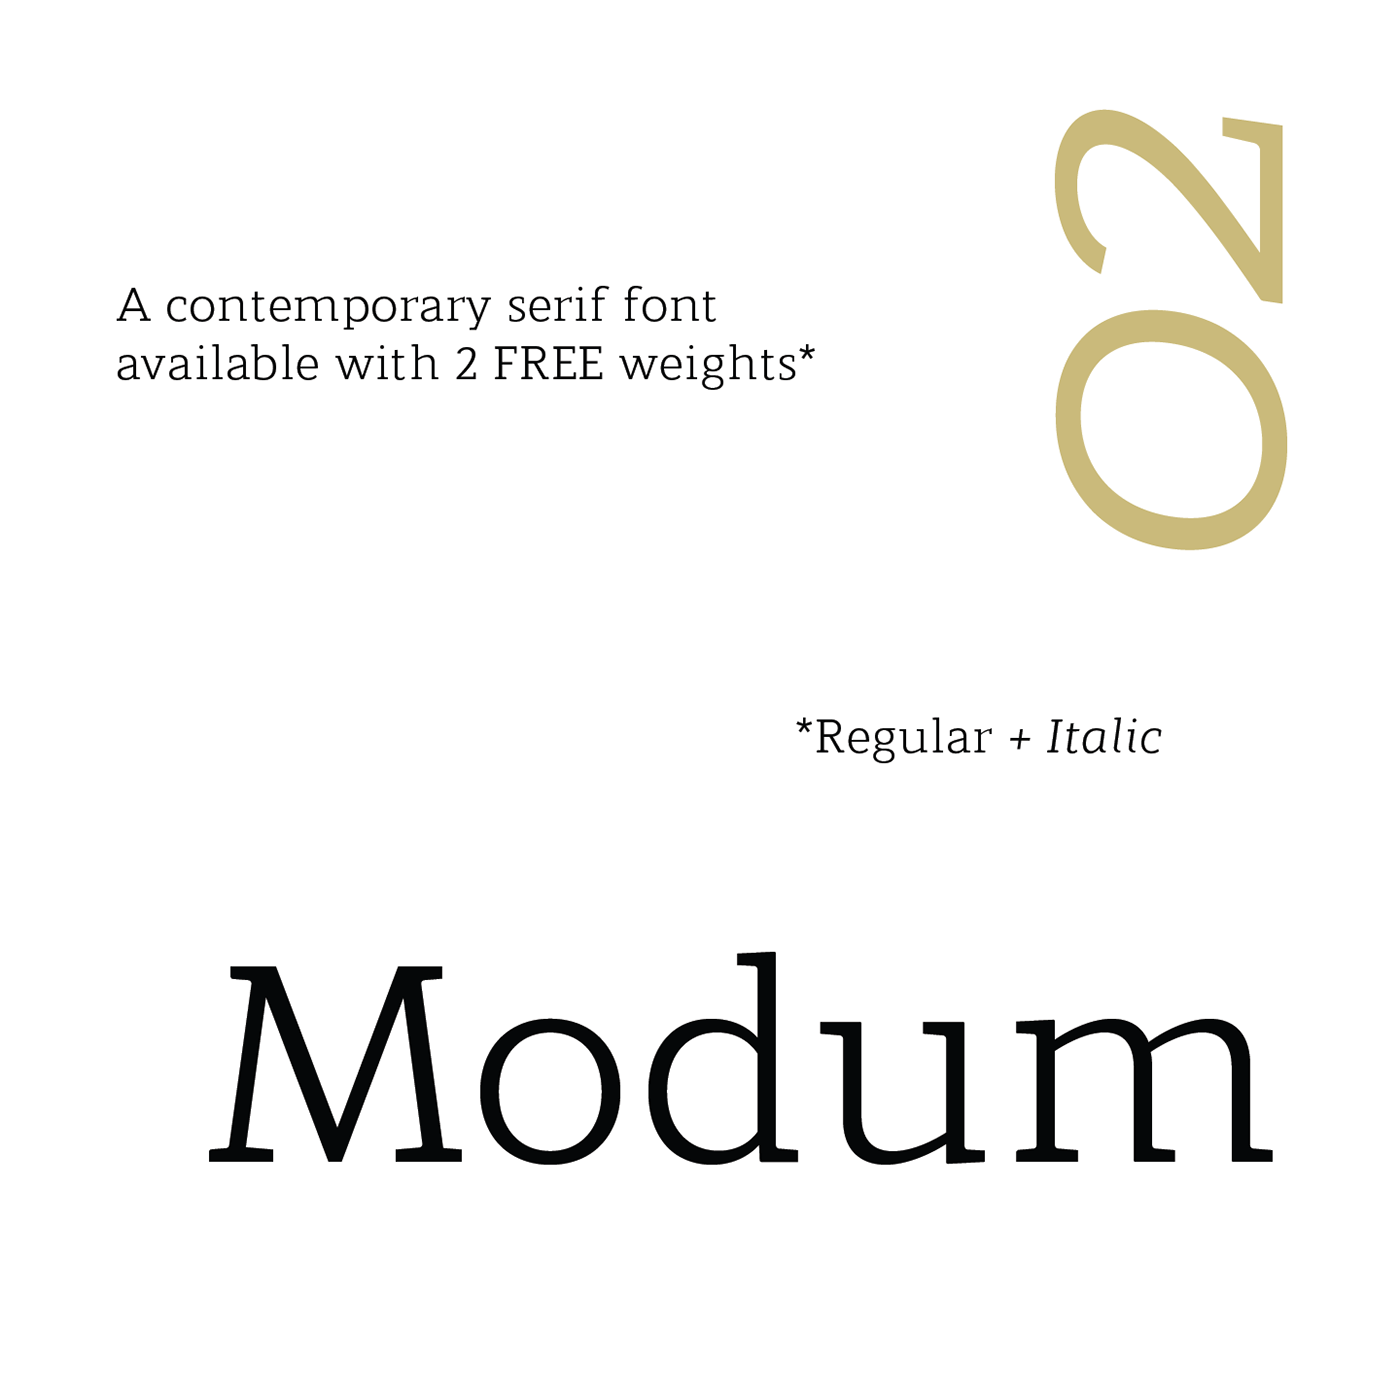 free serif Typeface Free font contemporary books newspapers The Northern Block Serif Font serif typeface